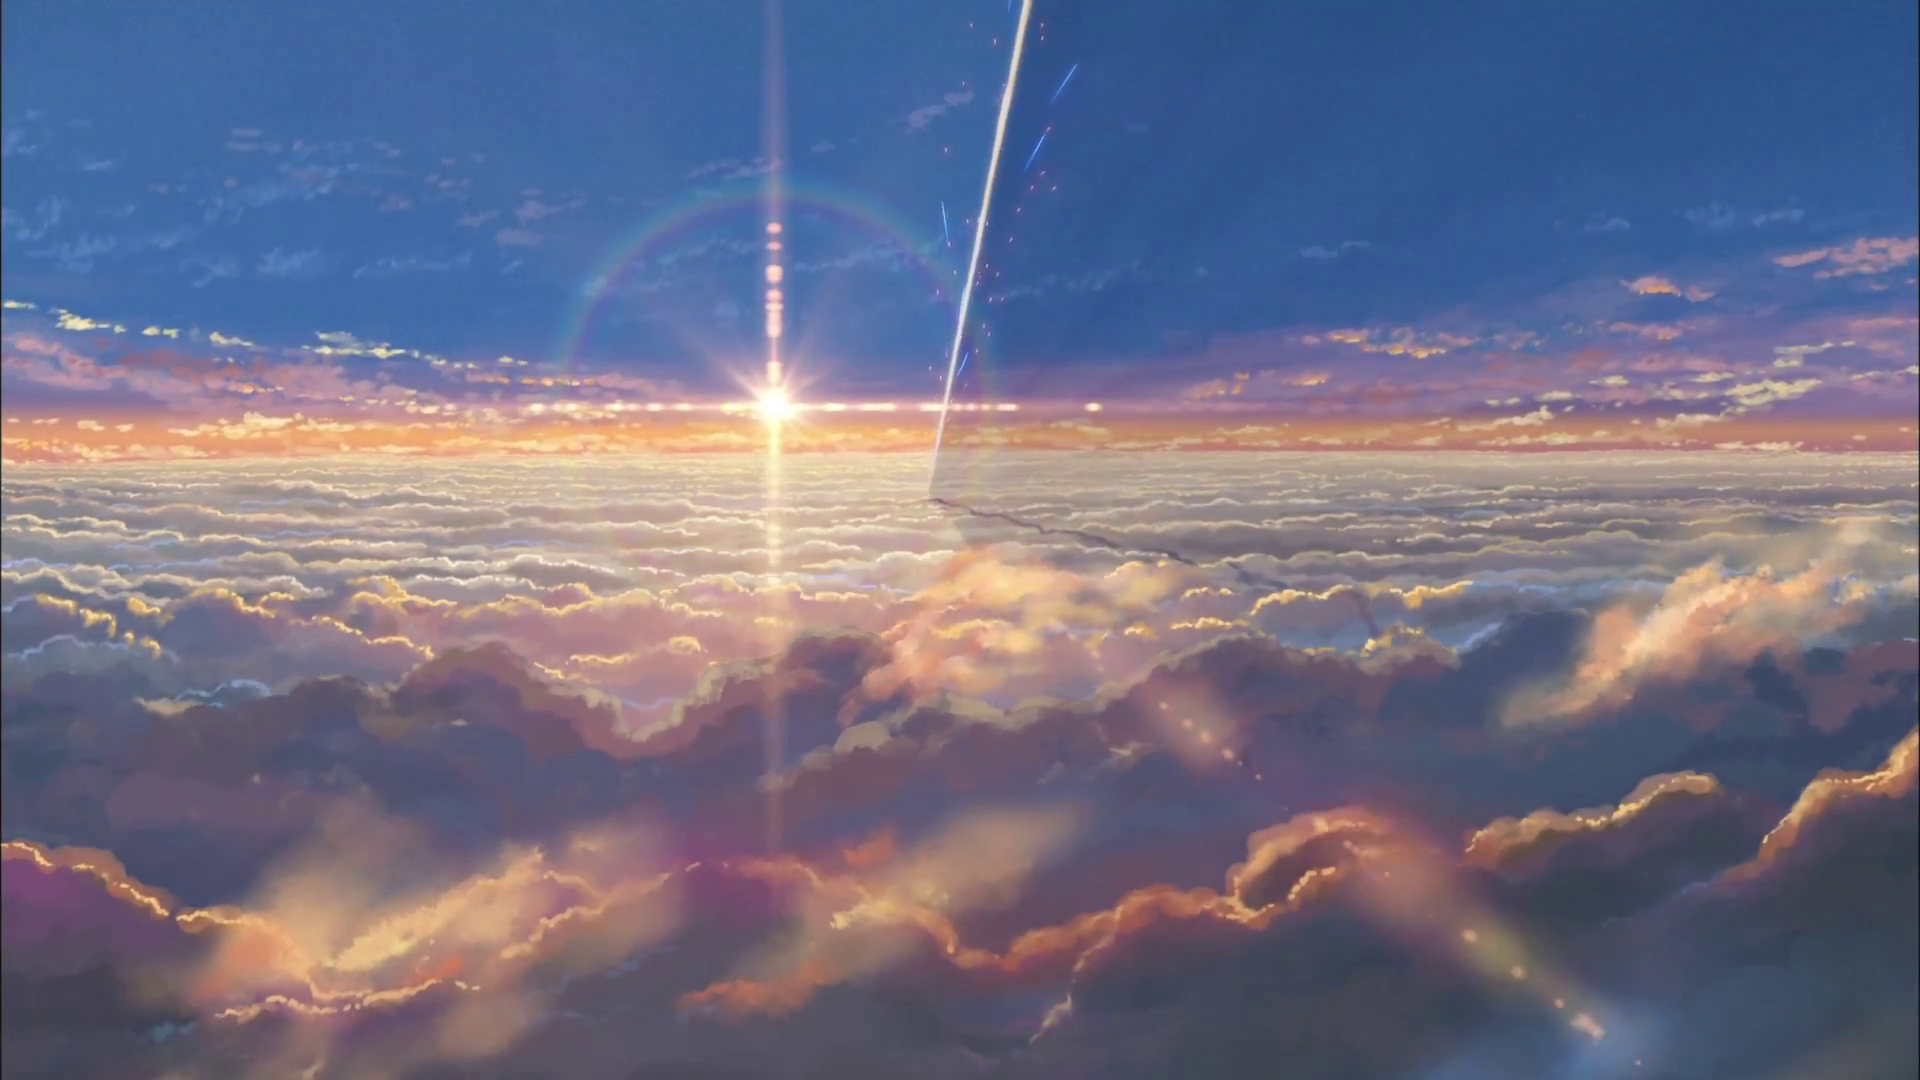 Makoto Shinkai Kimi No Na Wa Your Name Screencaps In 2020